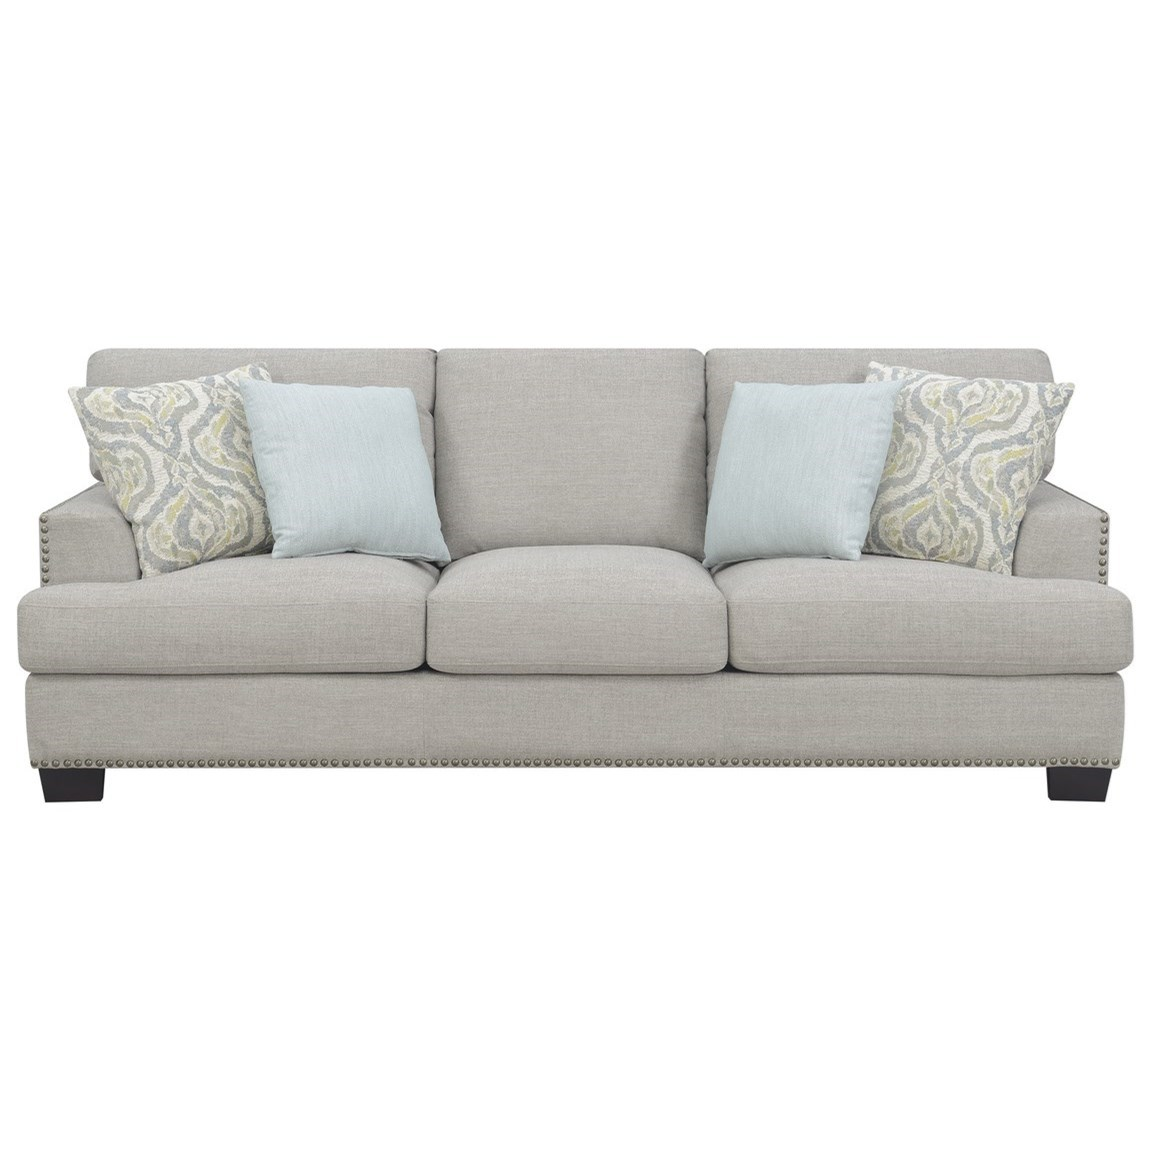 Kinsley Sofa by Emerald at Northeast Factory Direct